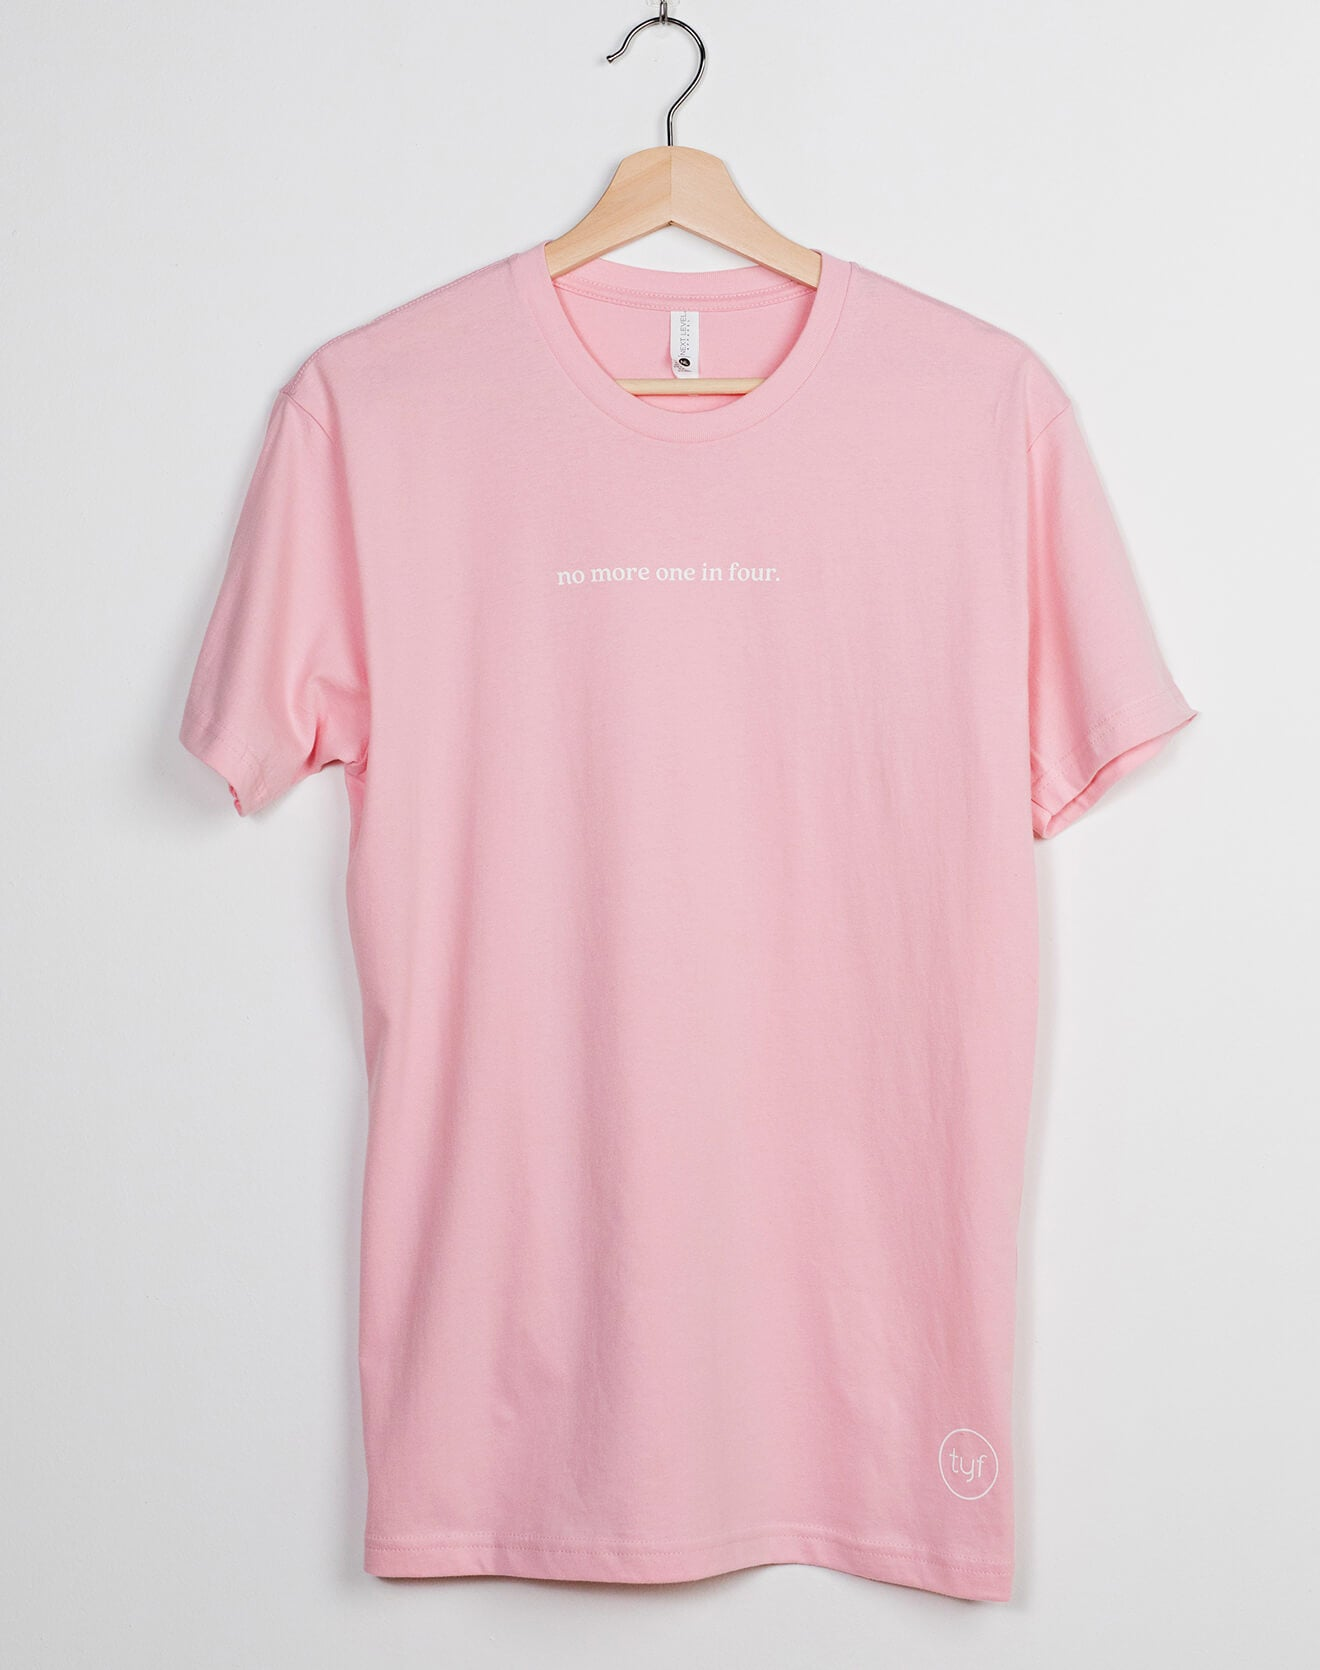 Pink Unisex No More One In Four T-Shirt